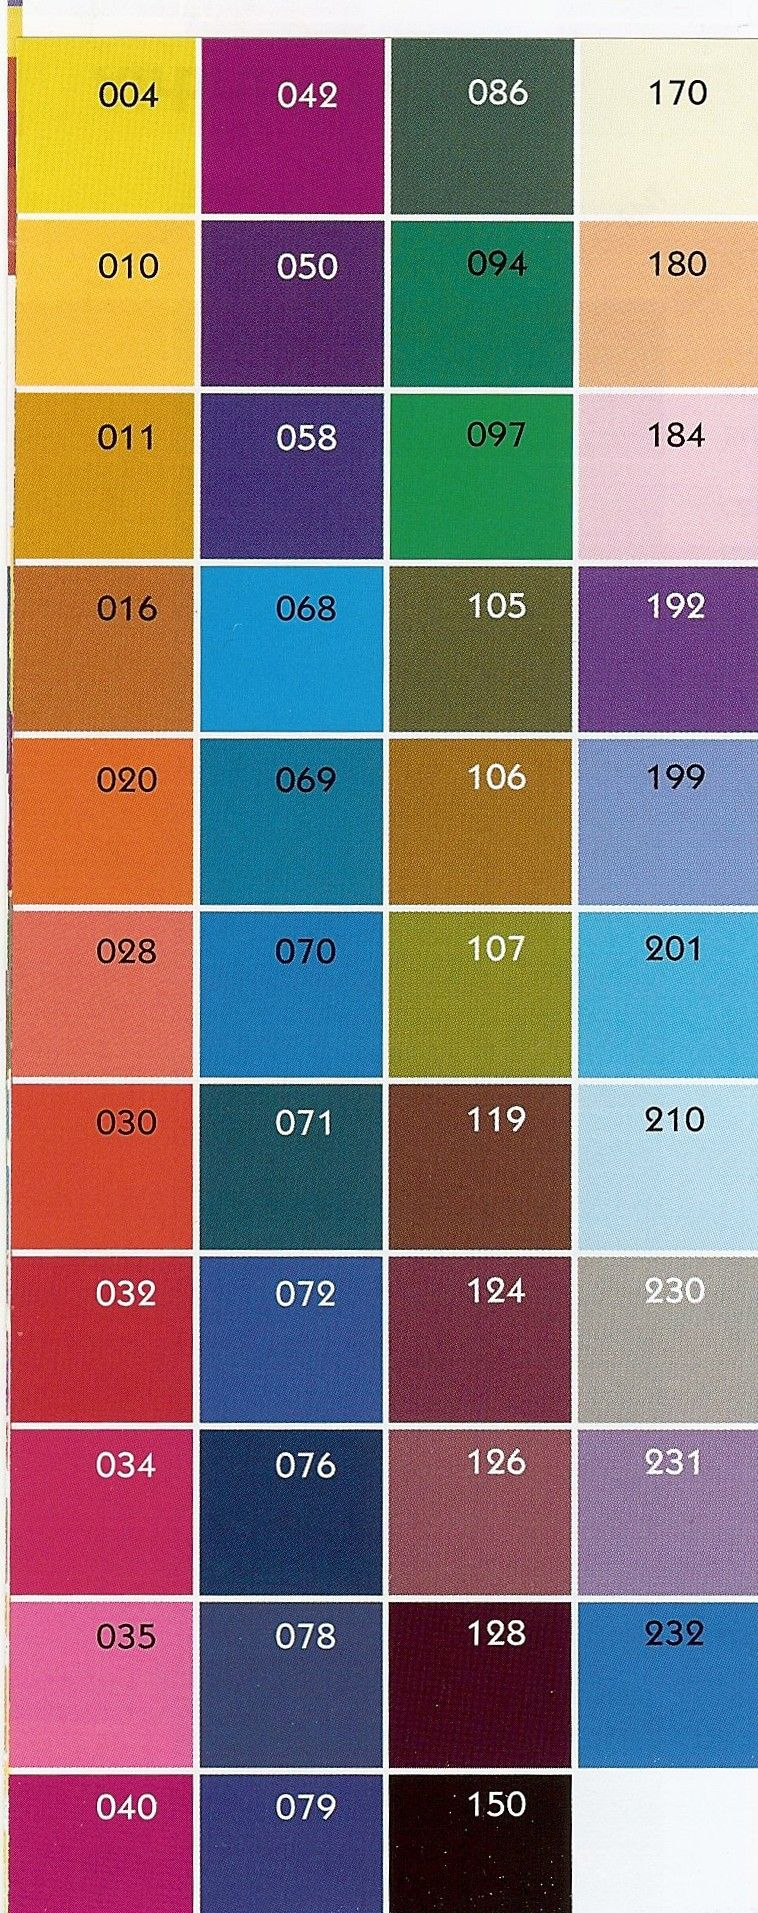 Procion dye chart diy how to reference pinterest chart procion dye chart nvjuhfo Images